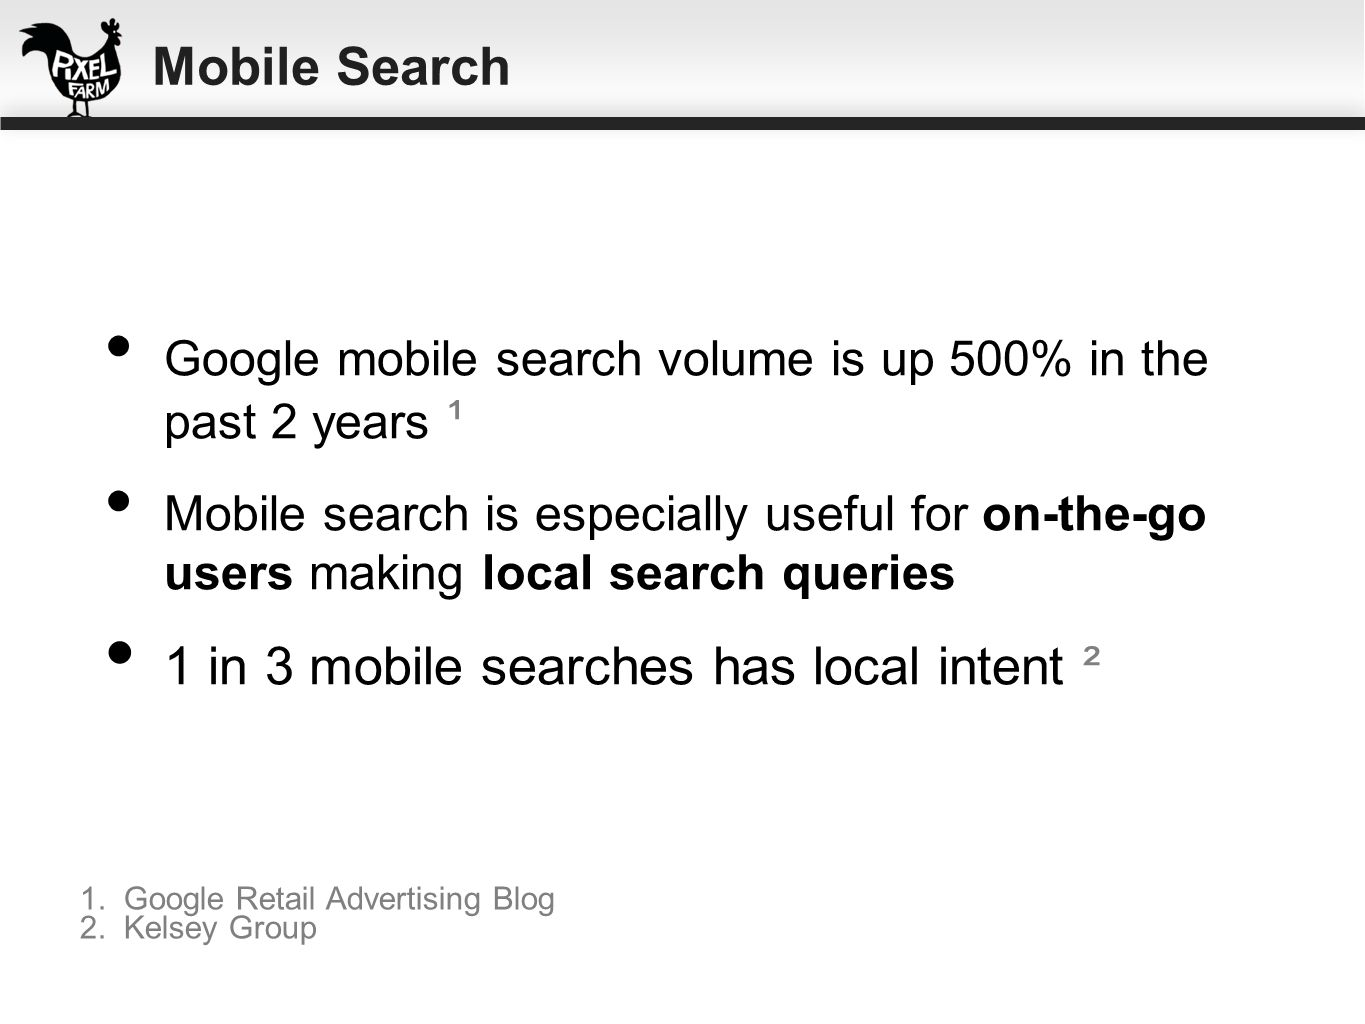 1 in 3 mobile searches has local intent ²